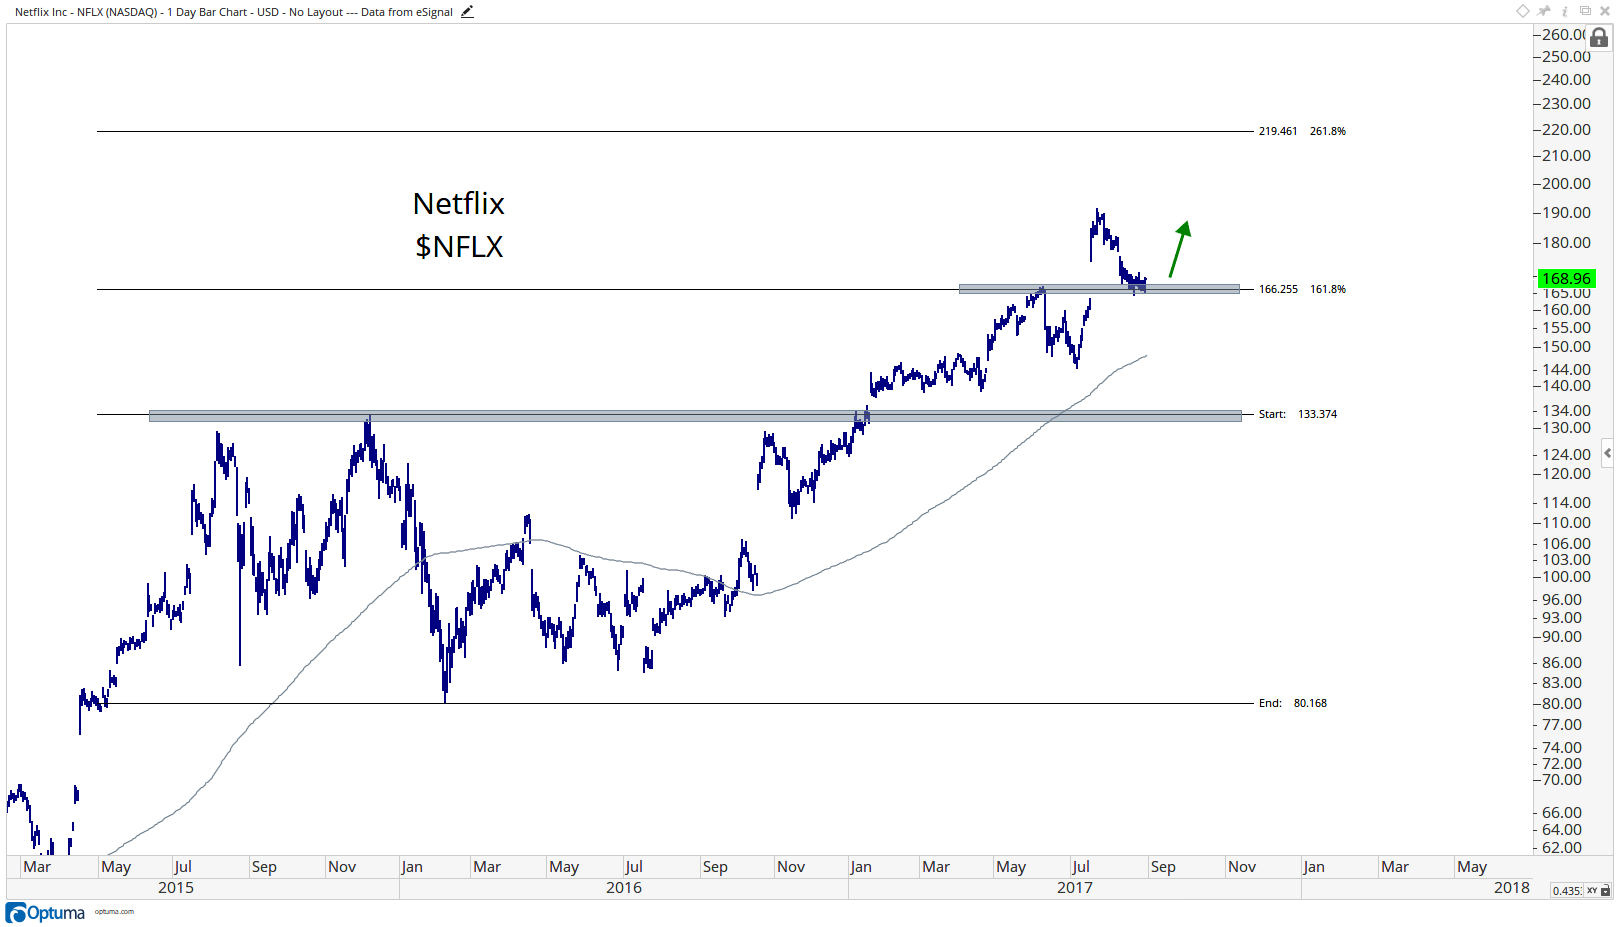 Technical Analysis for NFLX - Netflix, Inc.